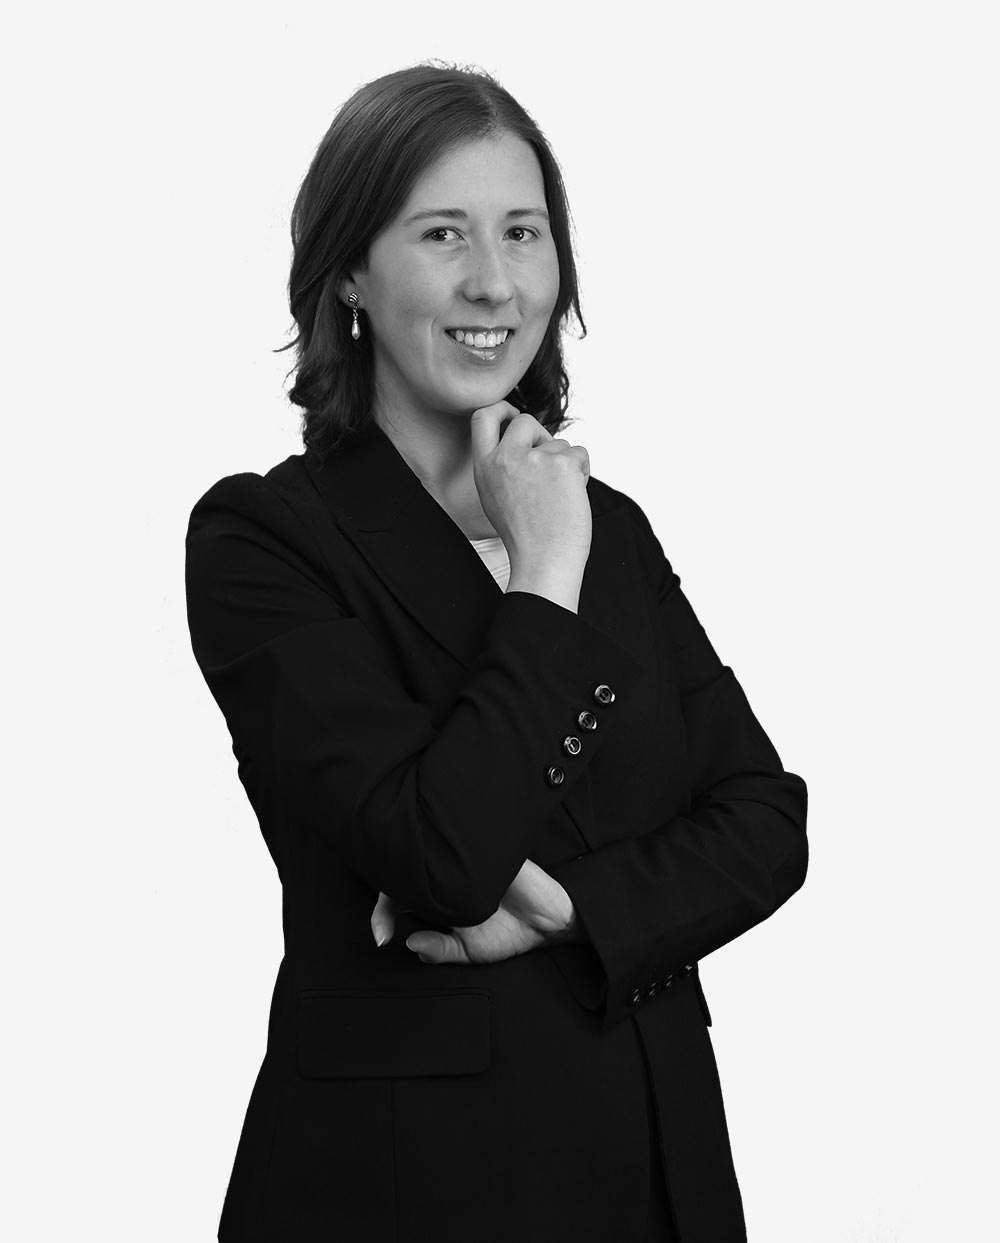 Me Émilie Chevrier, attorney | Team member of Barrette & Associates